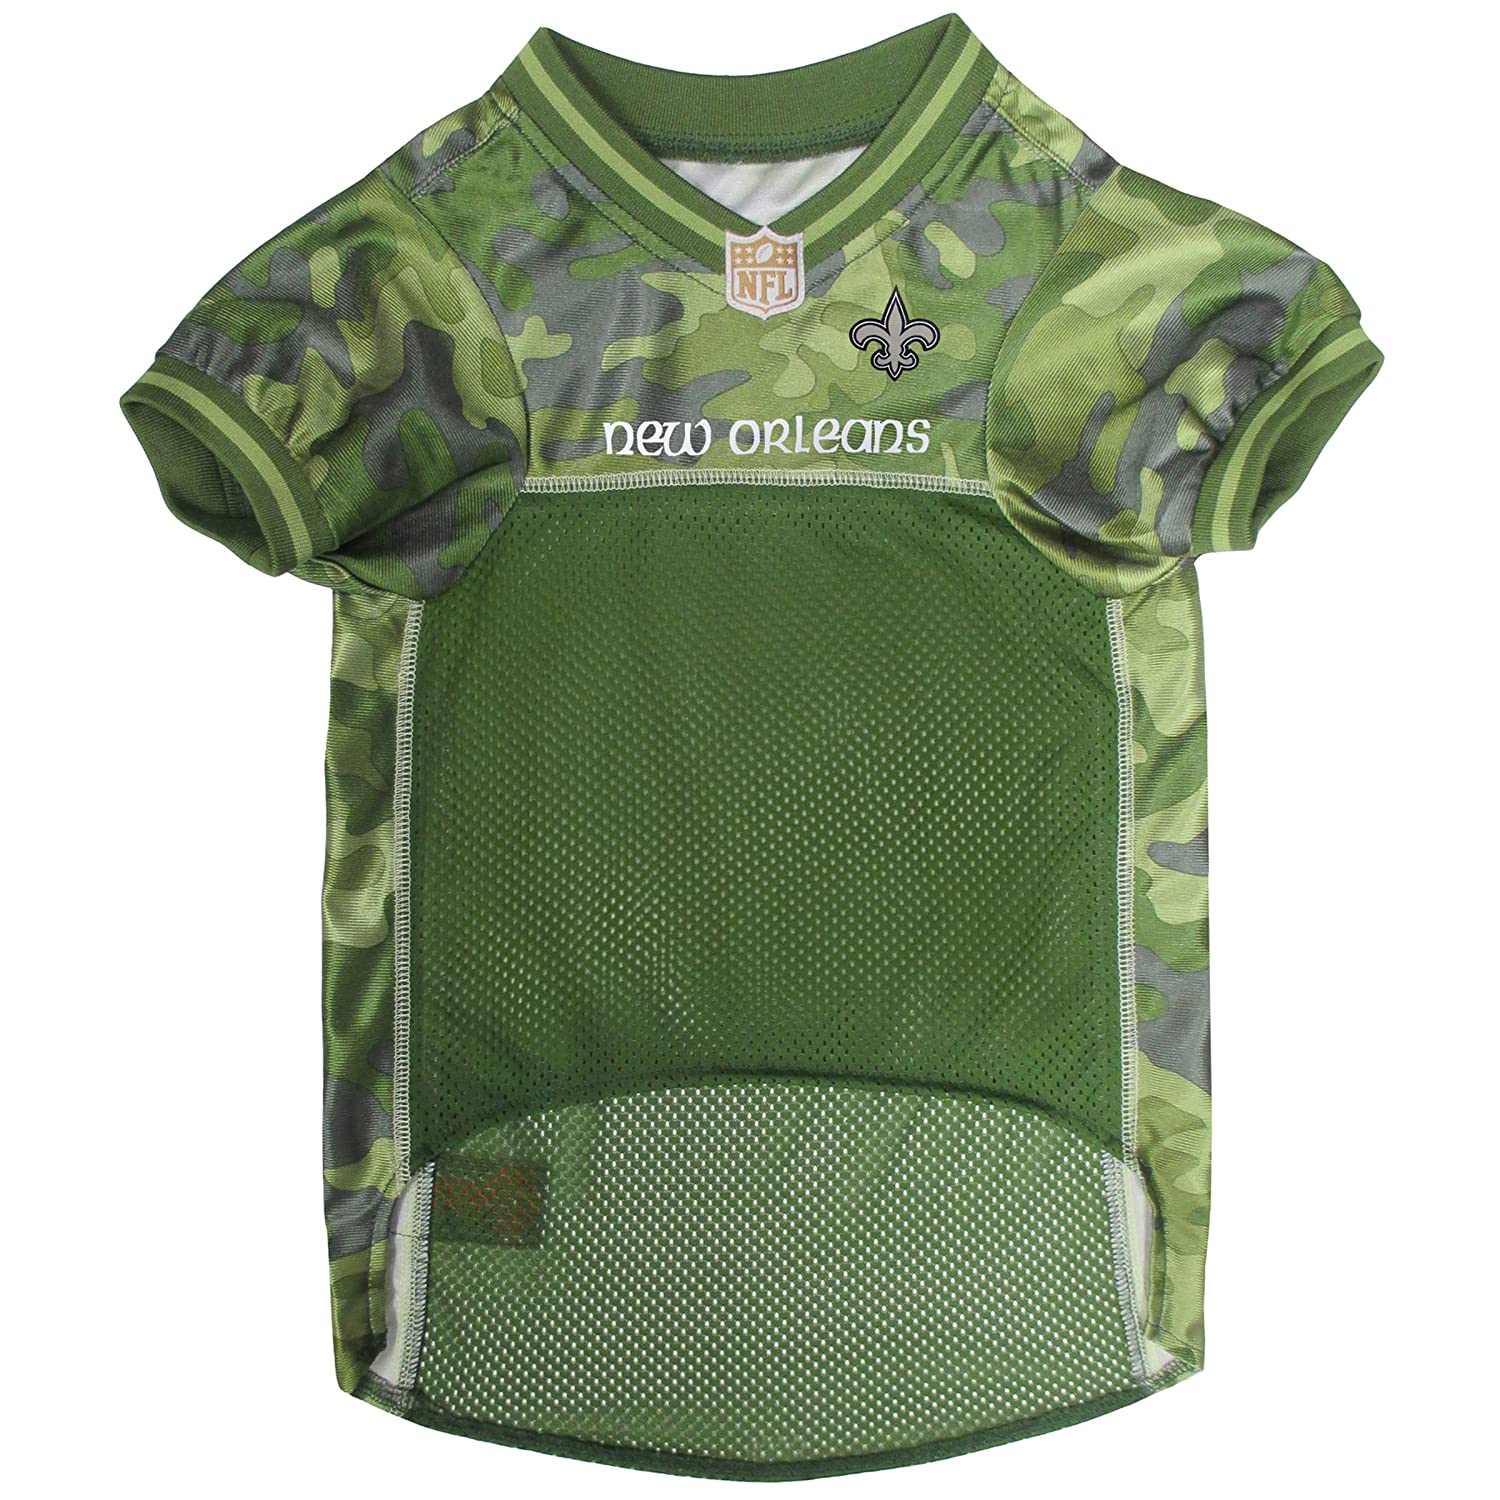 53ea10b78f6 Amazon.com : NFL New Orleans Saints Camouflage Dog Jersey, Small. - CAMO  PET Jersey Available in 5 Sizes & 32 NFL Teams. Hunting Dog Shirt : Pet  Supplies